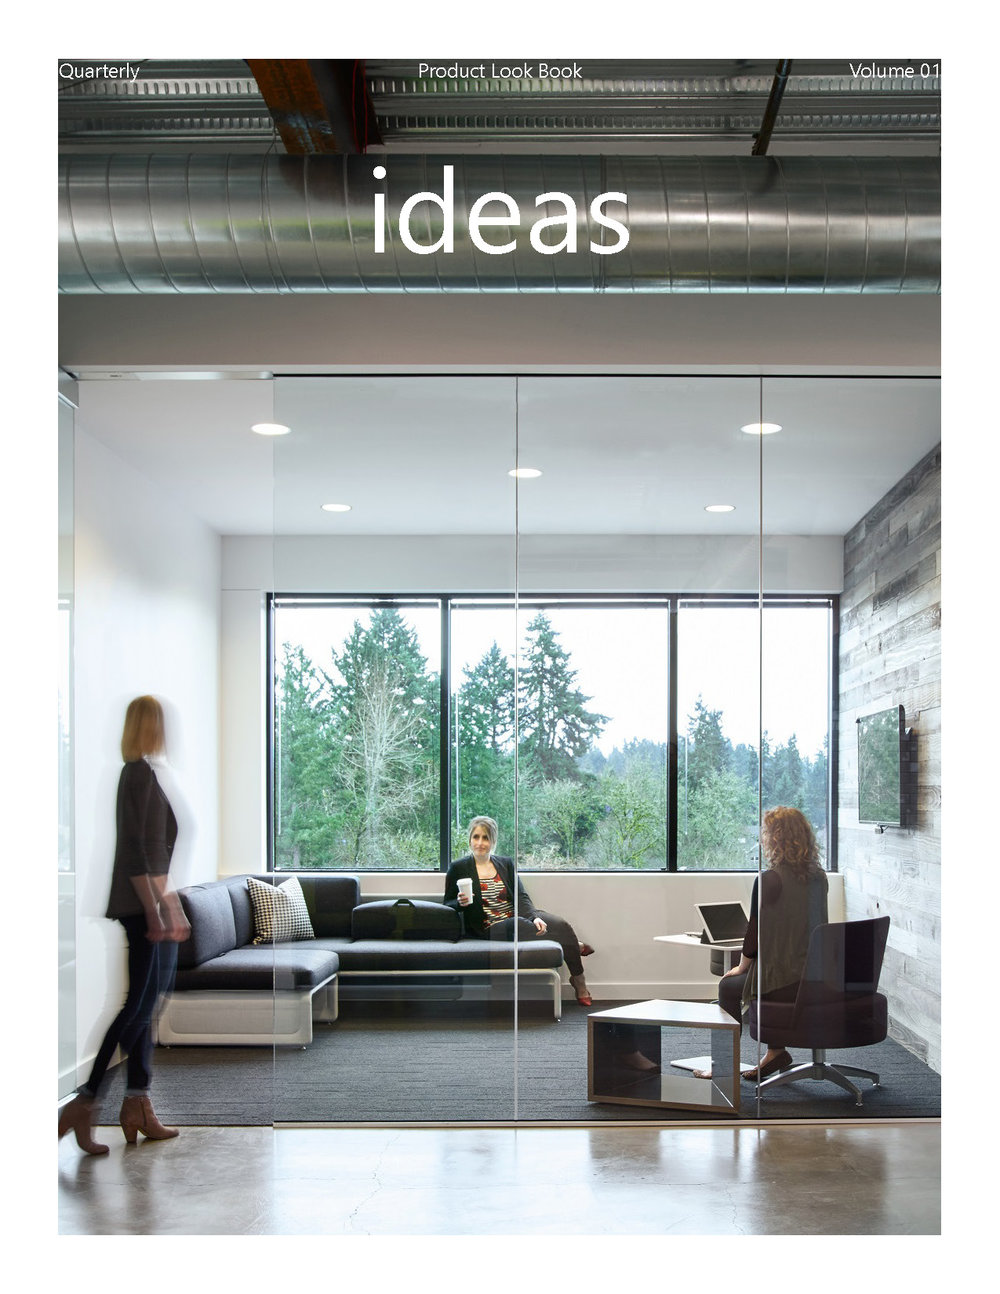 ideas Volume 1, Winter 2017